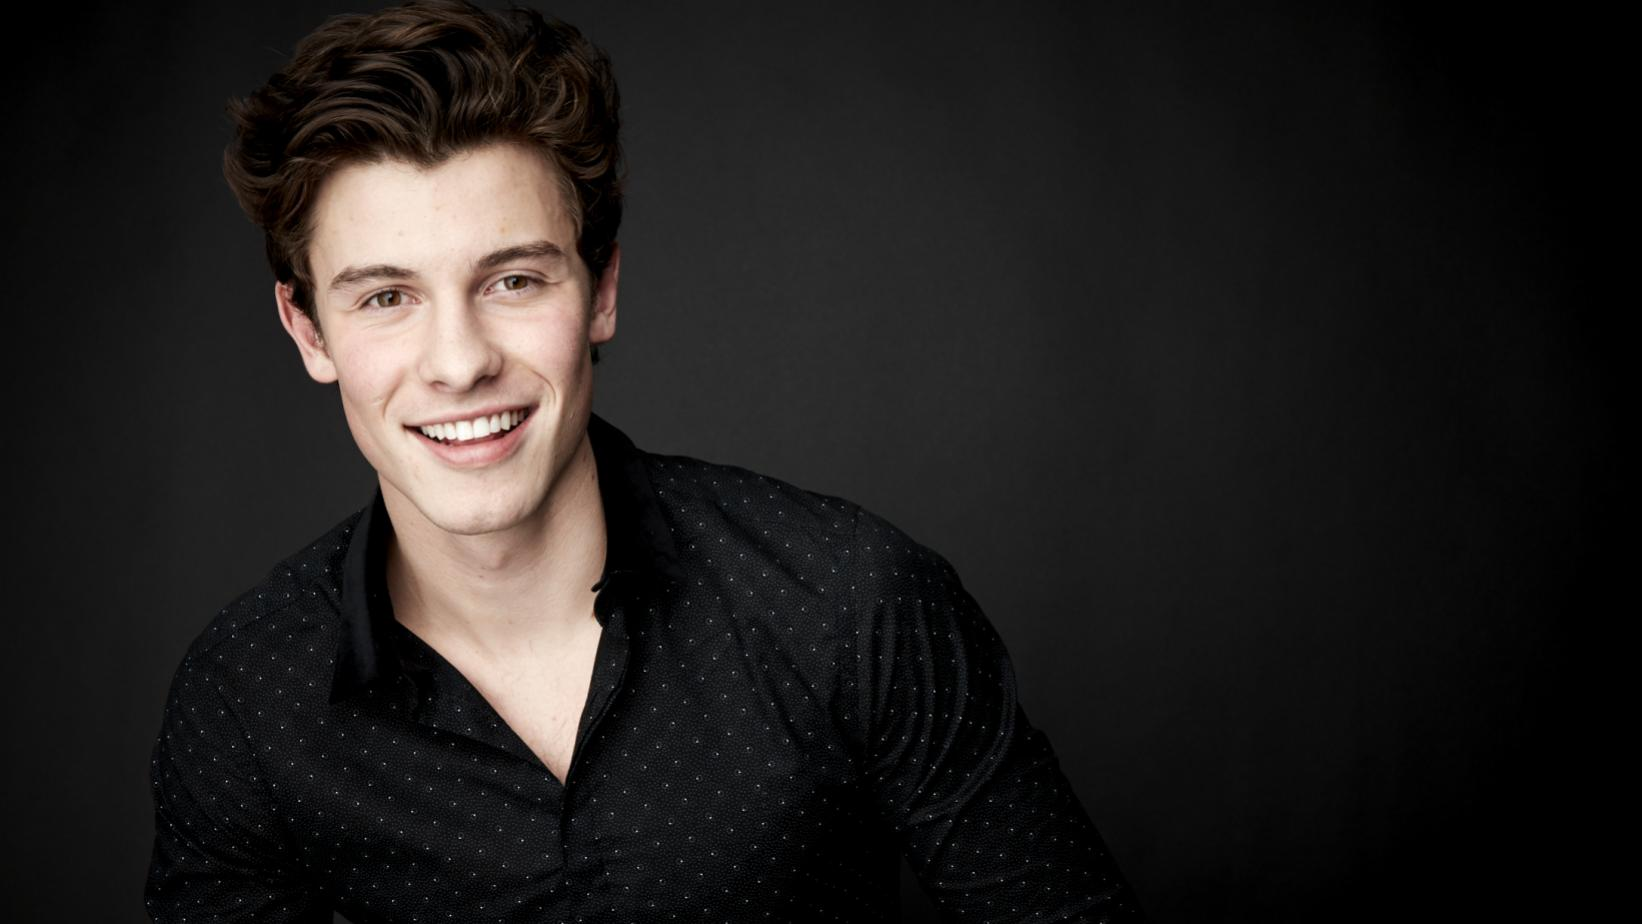 Shawn Mendes portrait